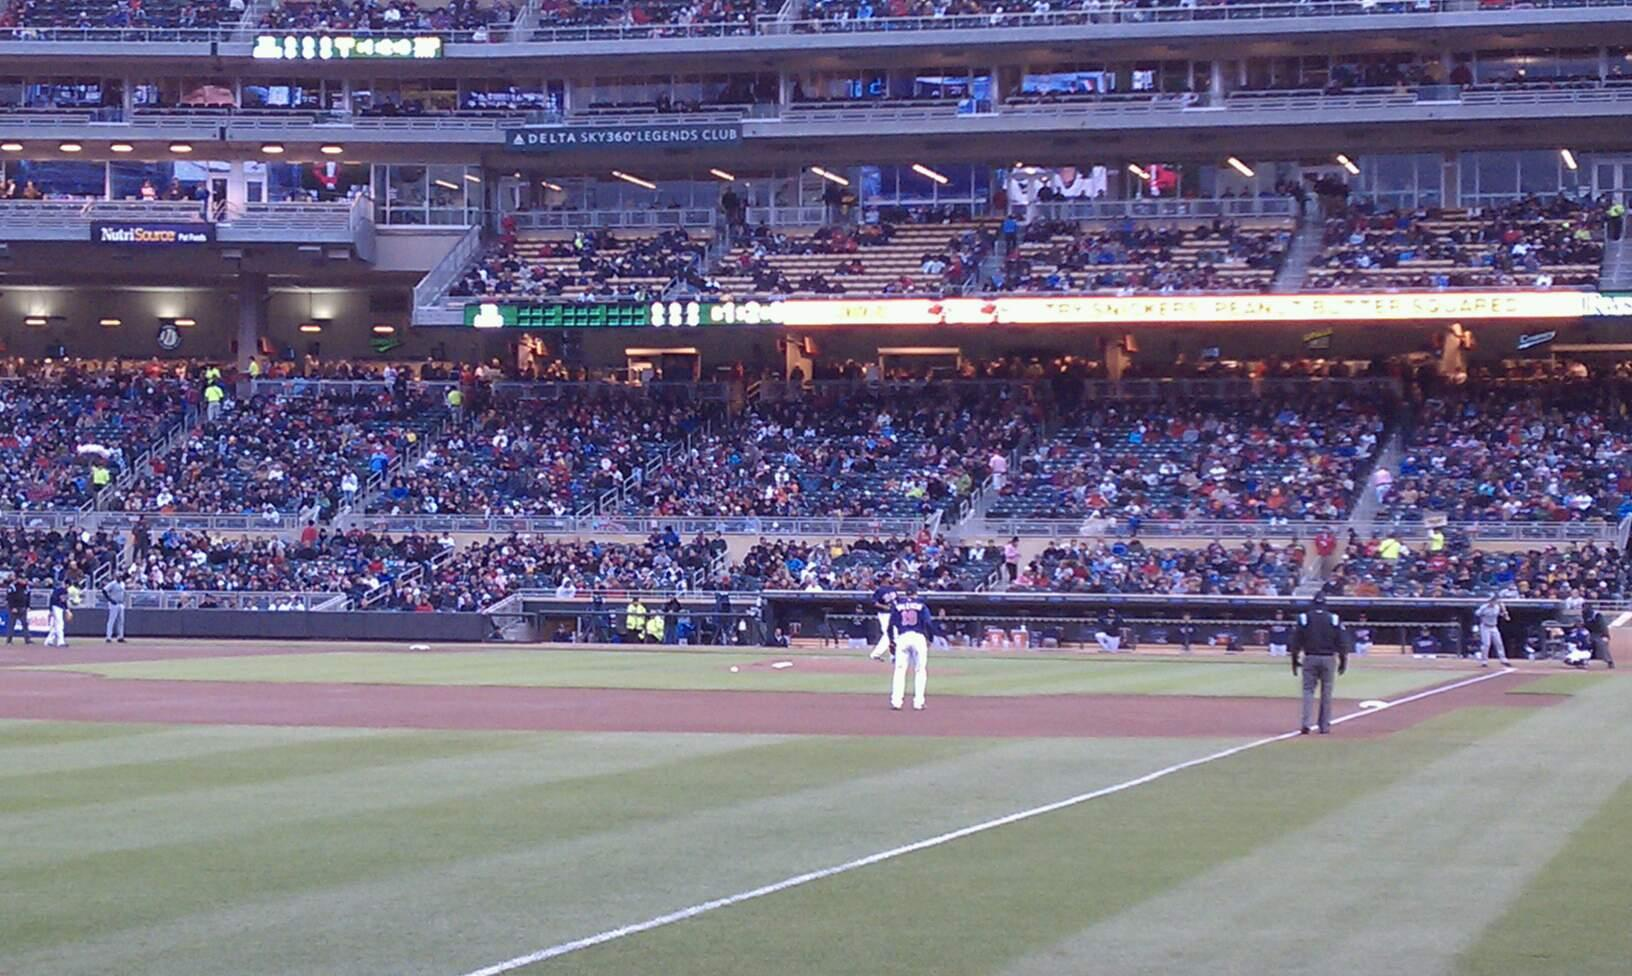 Target Field Section 126 Row 5 Seat 11